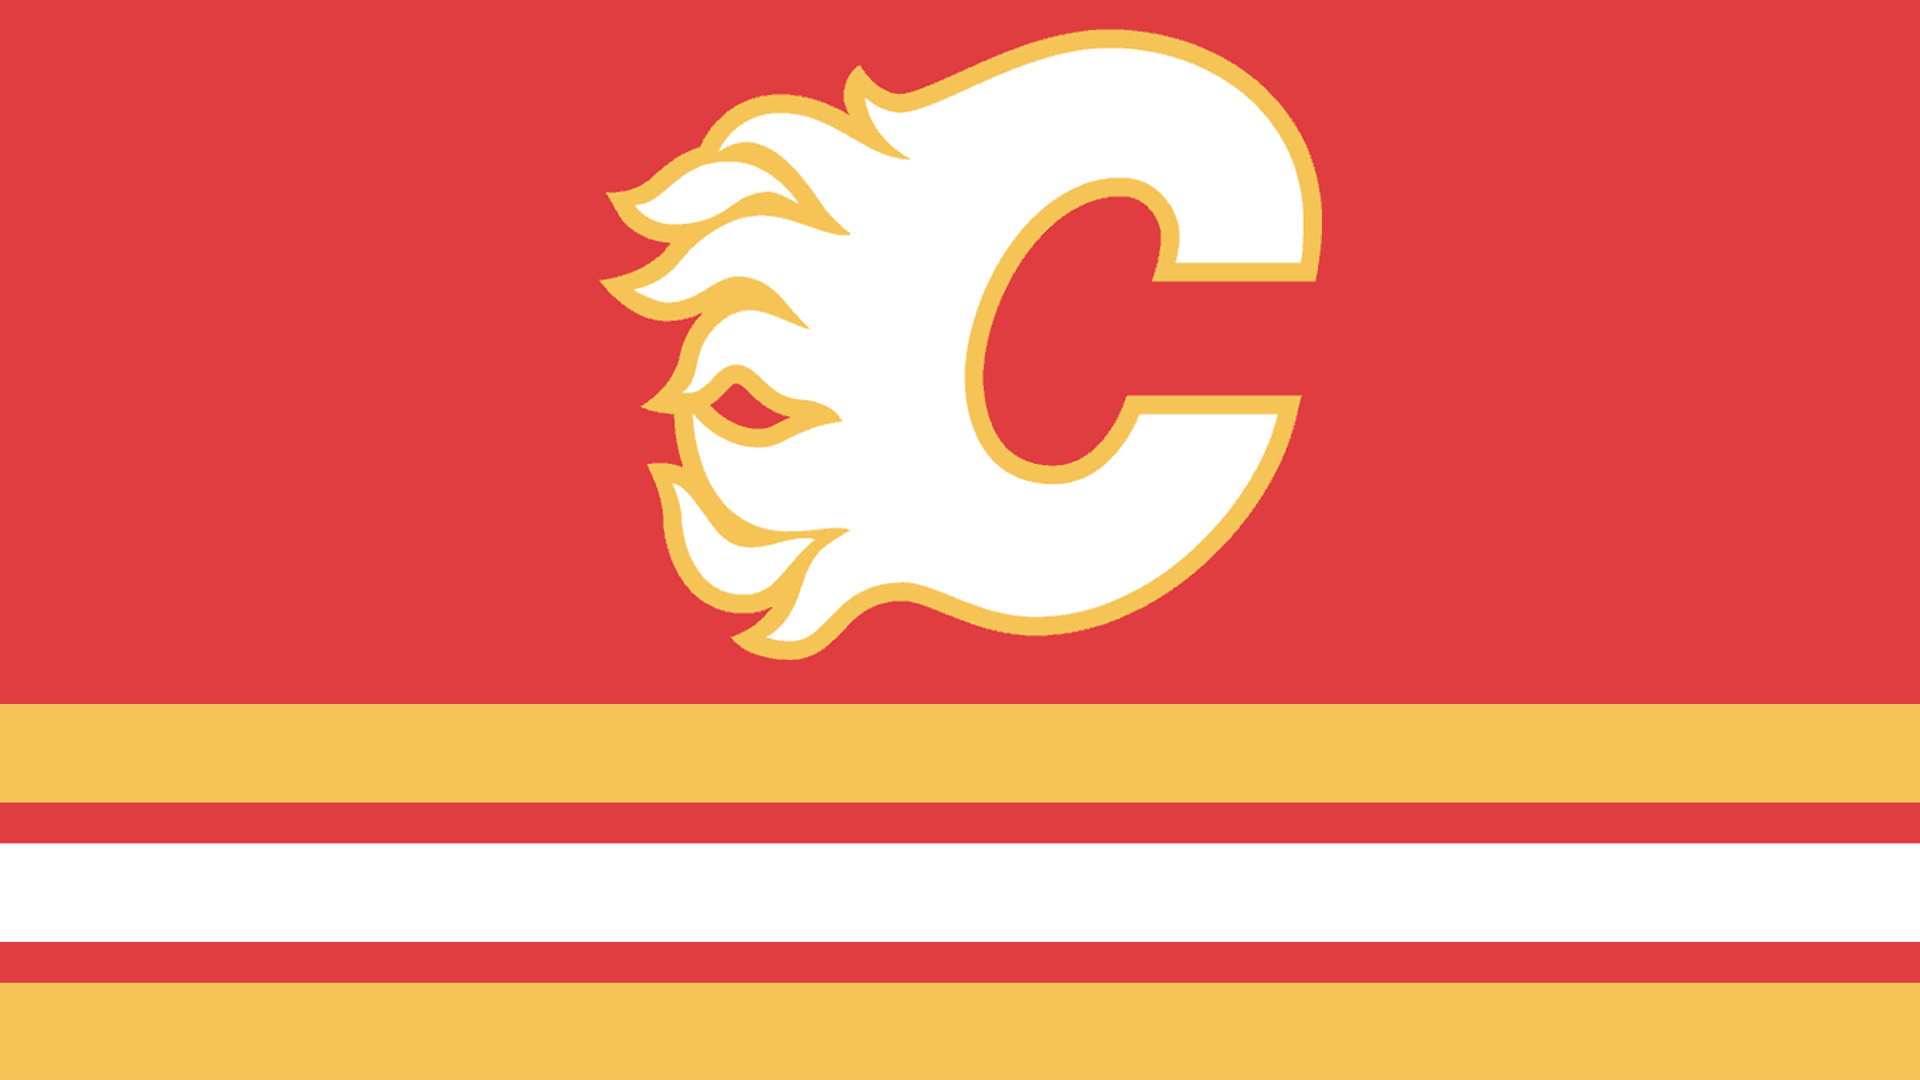 Calgary Flames Desktop Backgrounds wallpapers   General Discussions 1920x1080